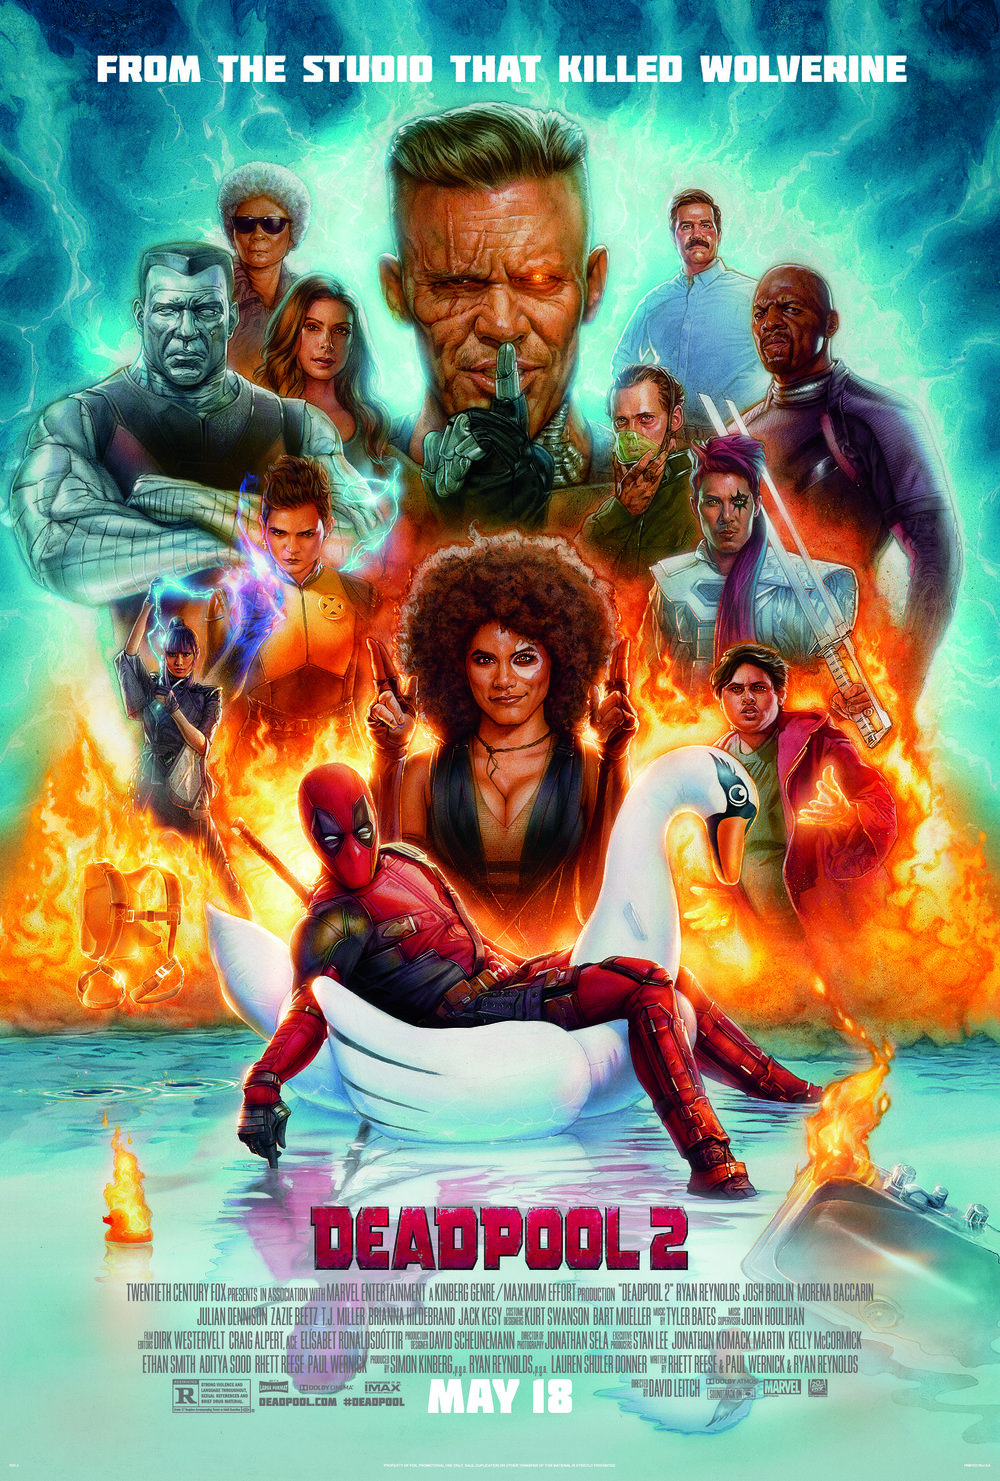 Deadpool 2 - Foul-mouthed mutant mercenary Wade Wilson (AKA. Deadpool), brings together a team of fellow mutant rogues to protect a young boy of supernatural abilities from the brutal, time-traveling mutant, Cable.